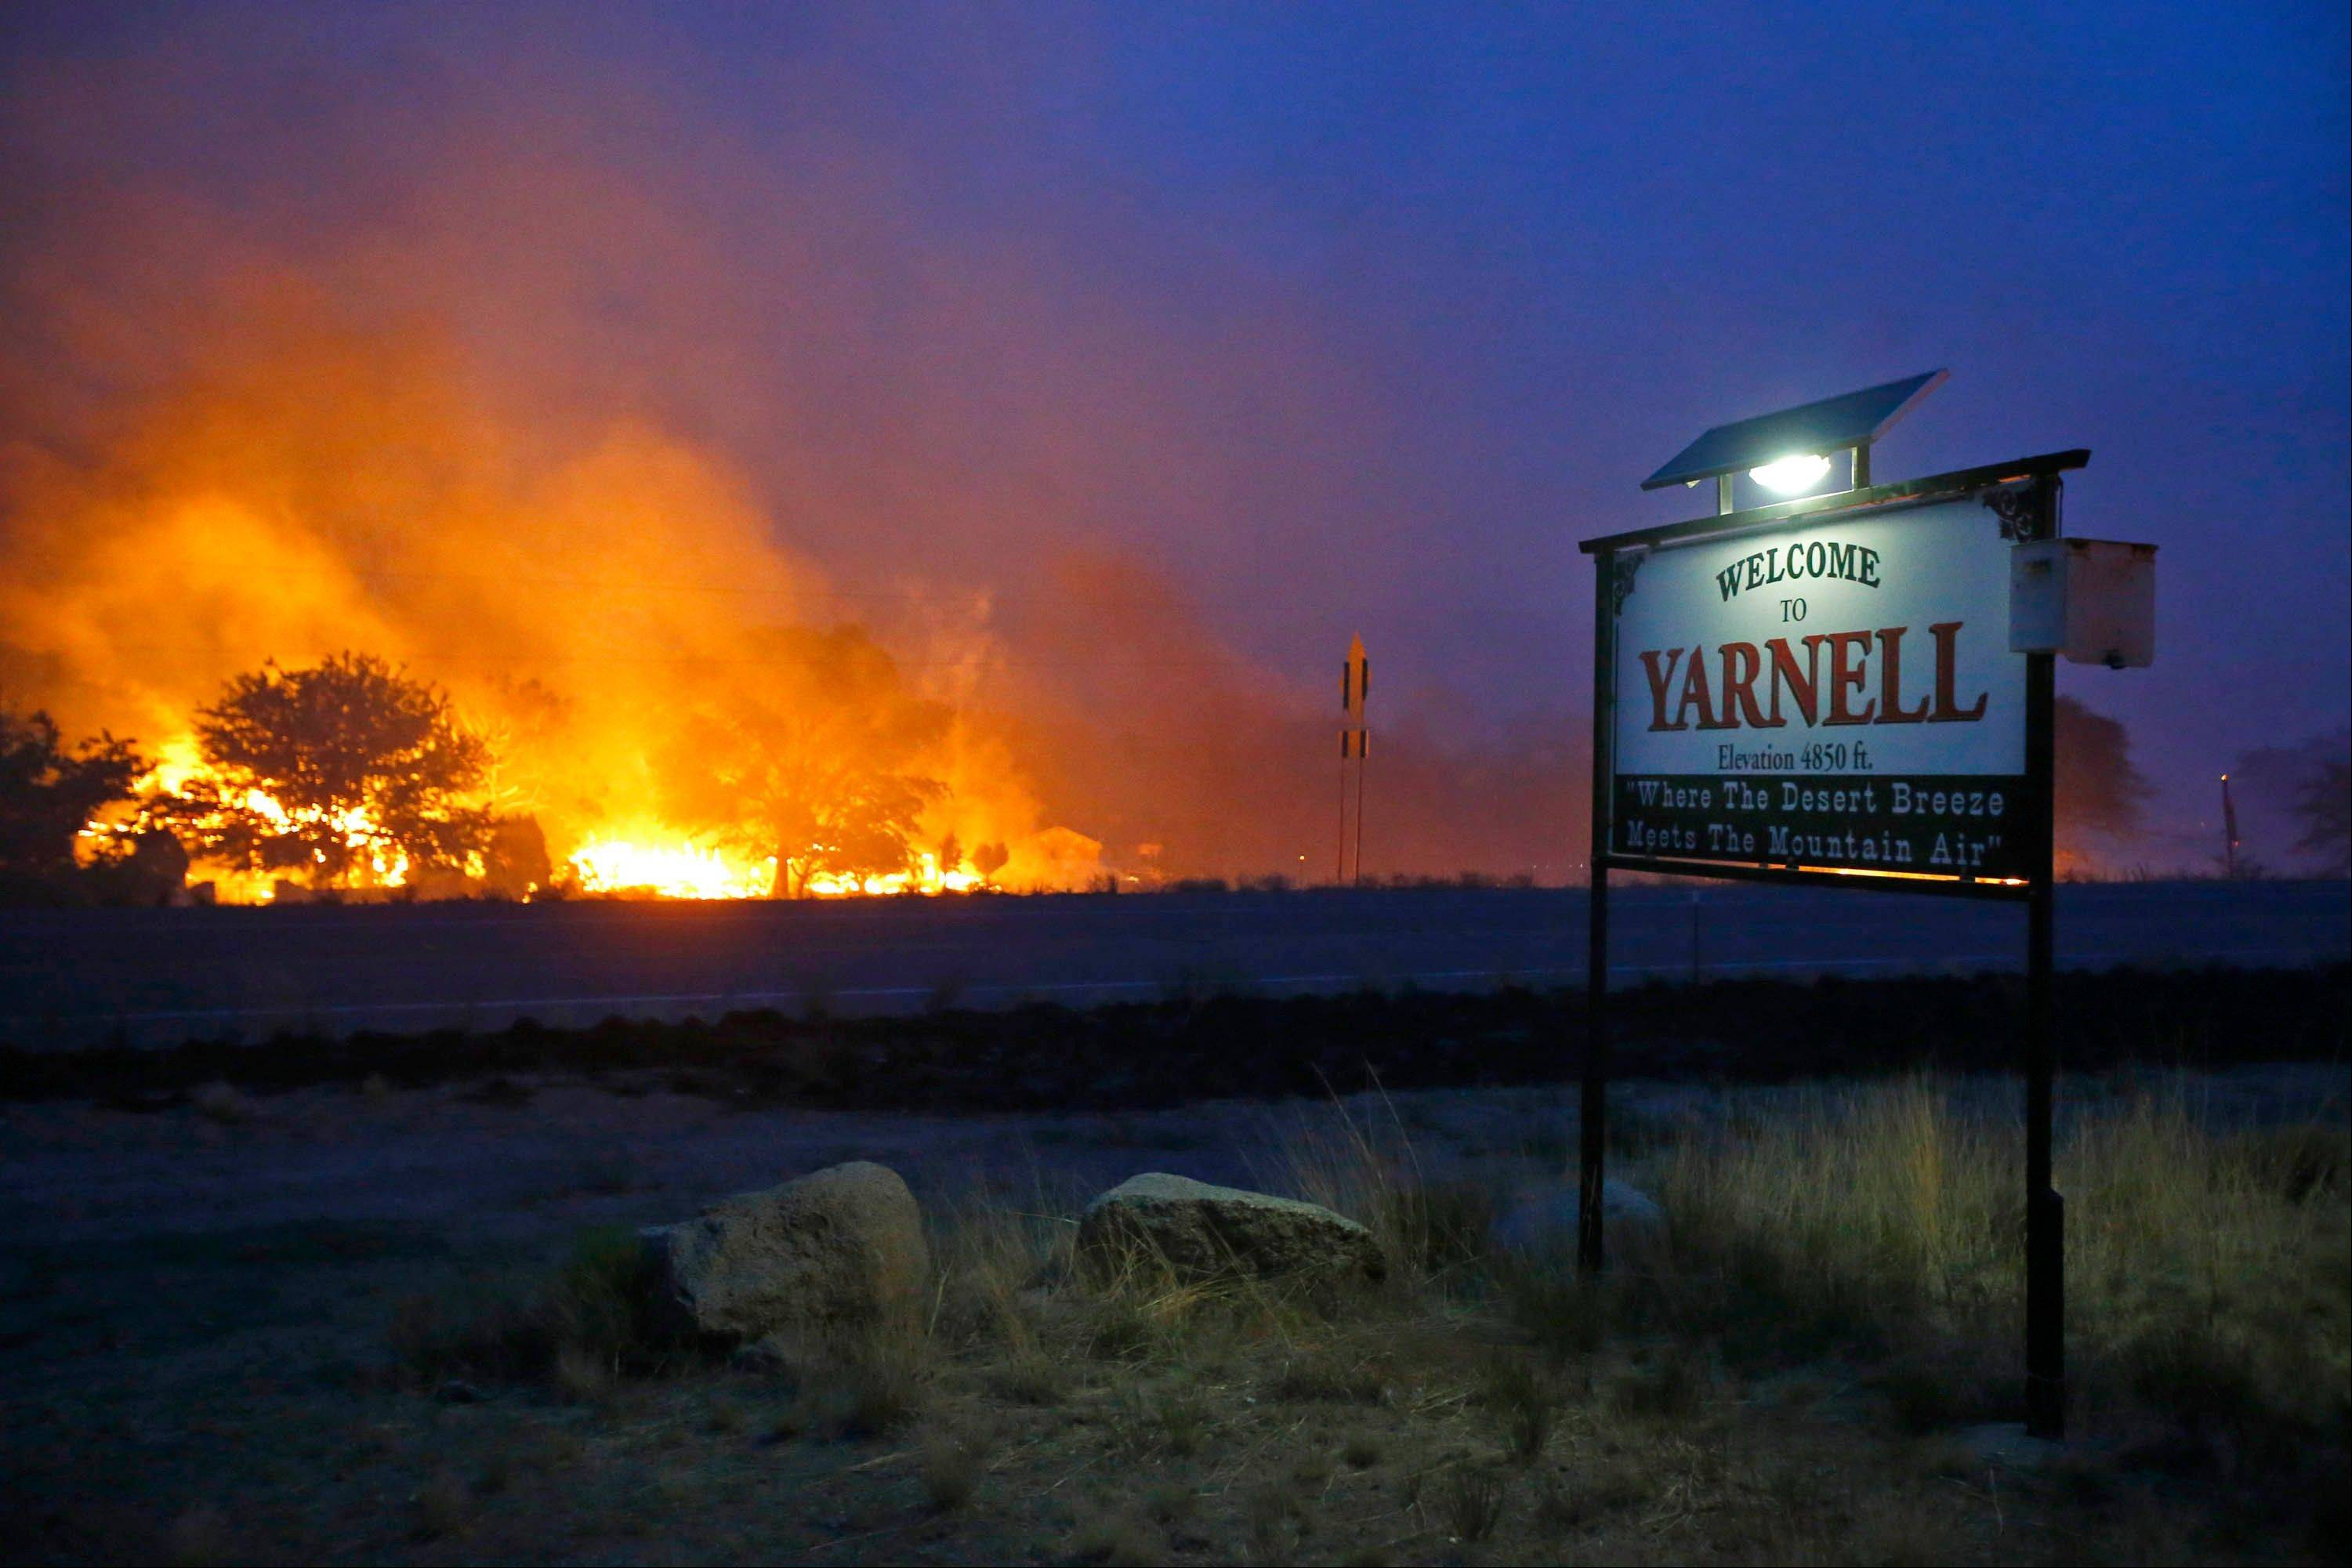 A wildfire burns homes in Yarnell, Ariz. on Sunday, June 30, 2013. An Arizona fire chief says the wildfire that killed 19 members of his crew near the town was moving fast and fueled by hot, dry conditions. The fire started with a lightning strike on Friday and spread to 2,000 acres on Sunday amid triple-digit temperatures.